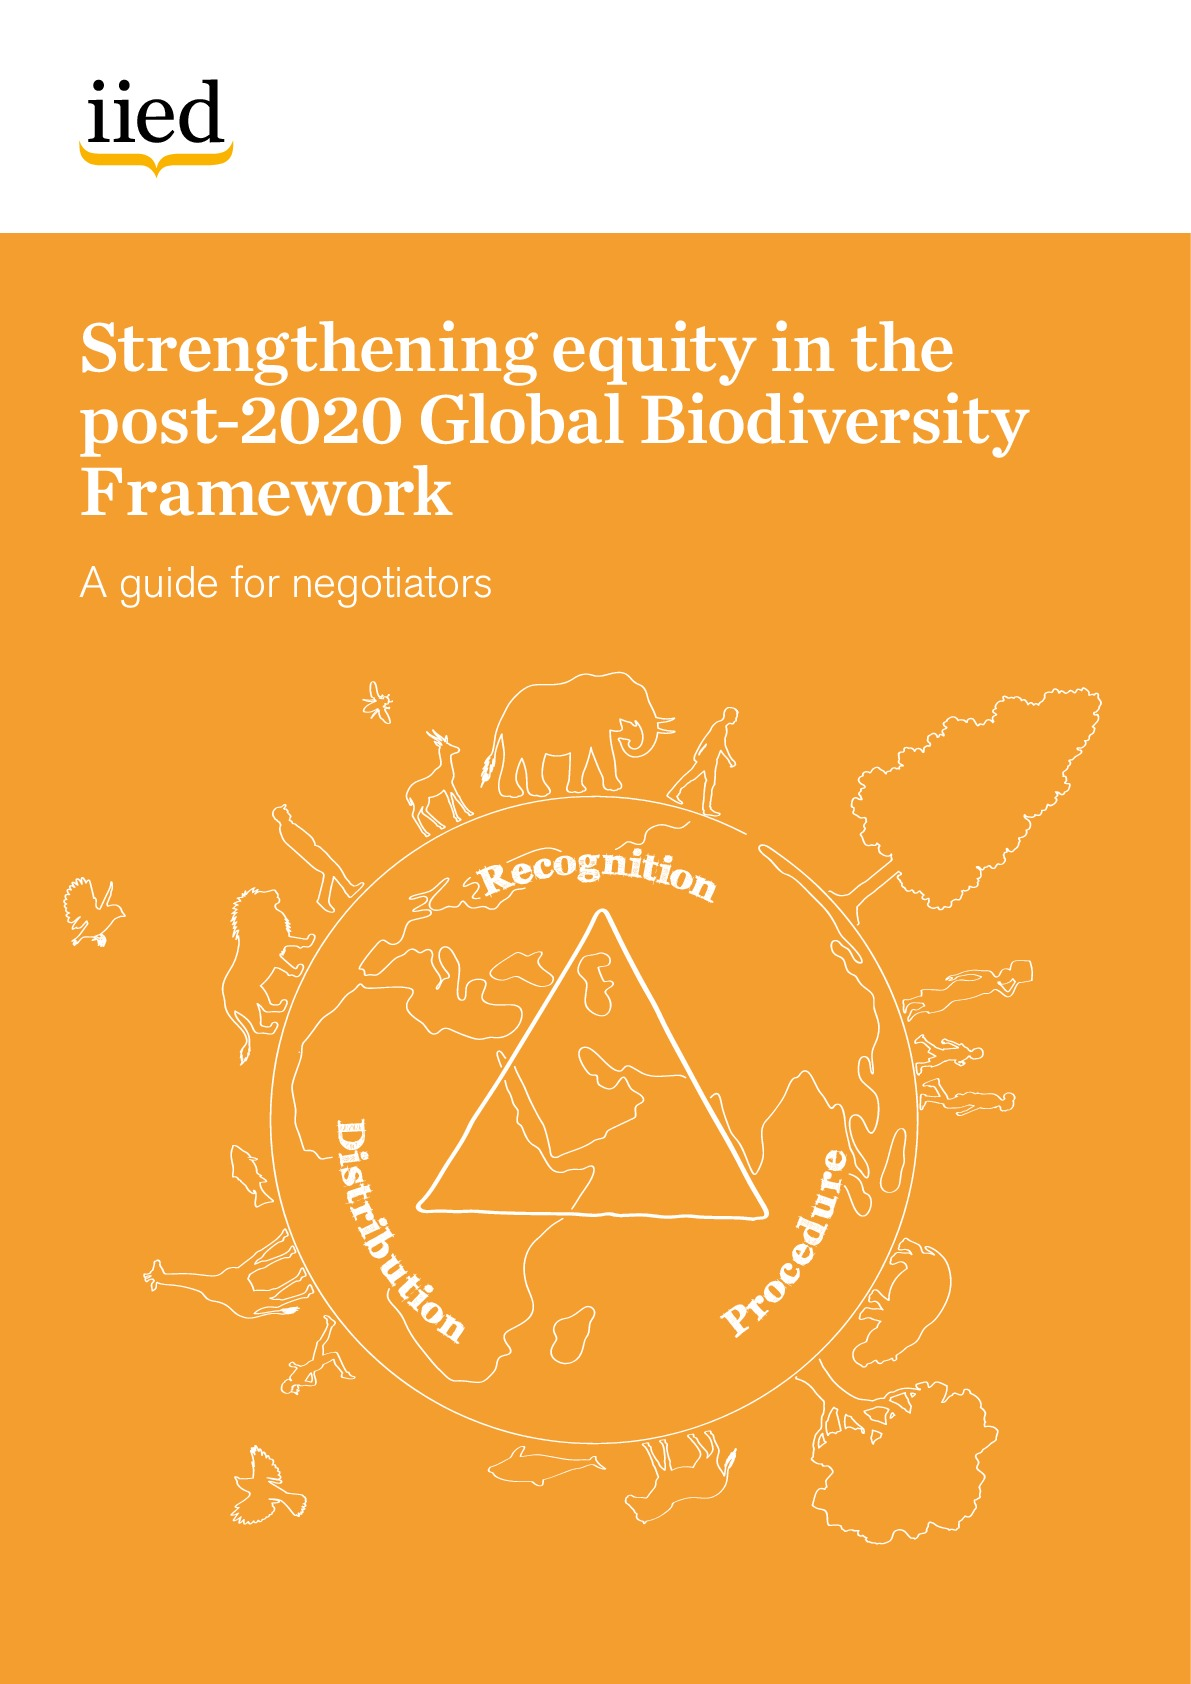 Strengthening equity in the post-2020 Global Biodiversity Framework